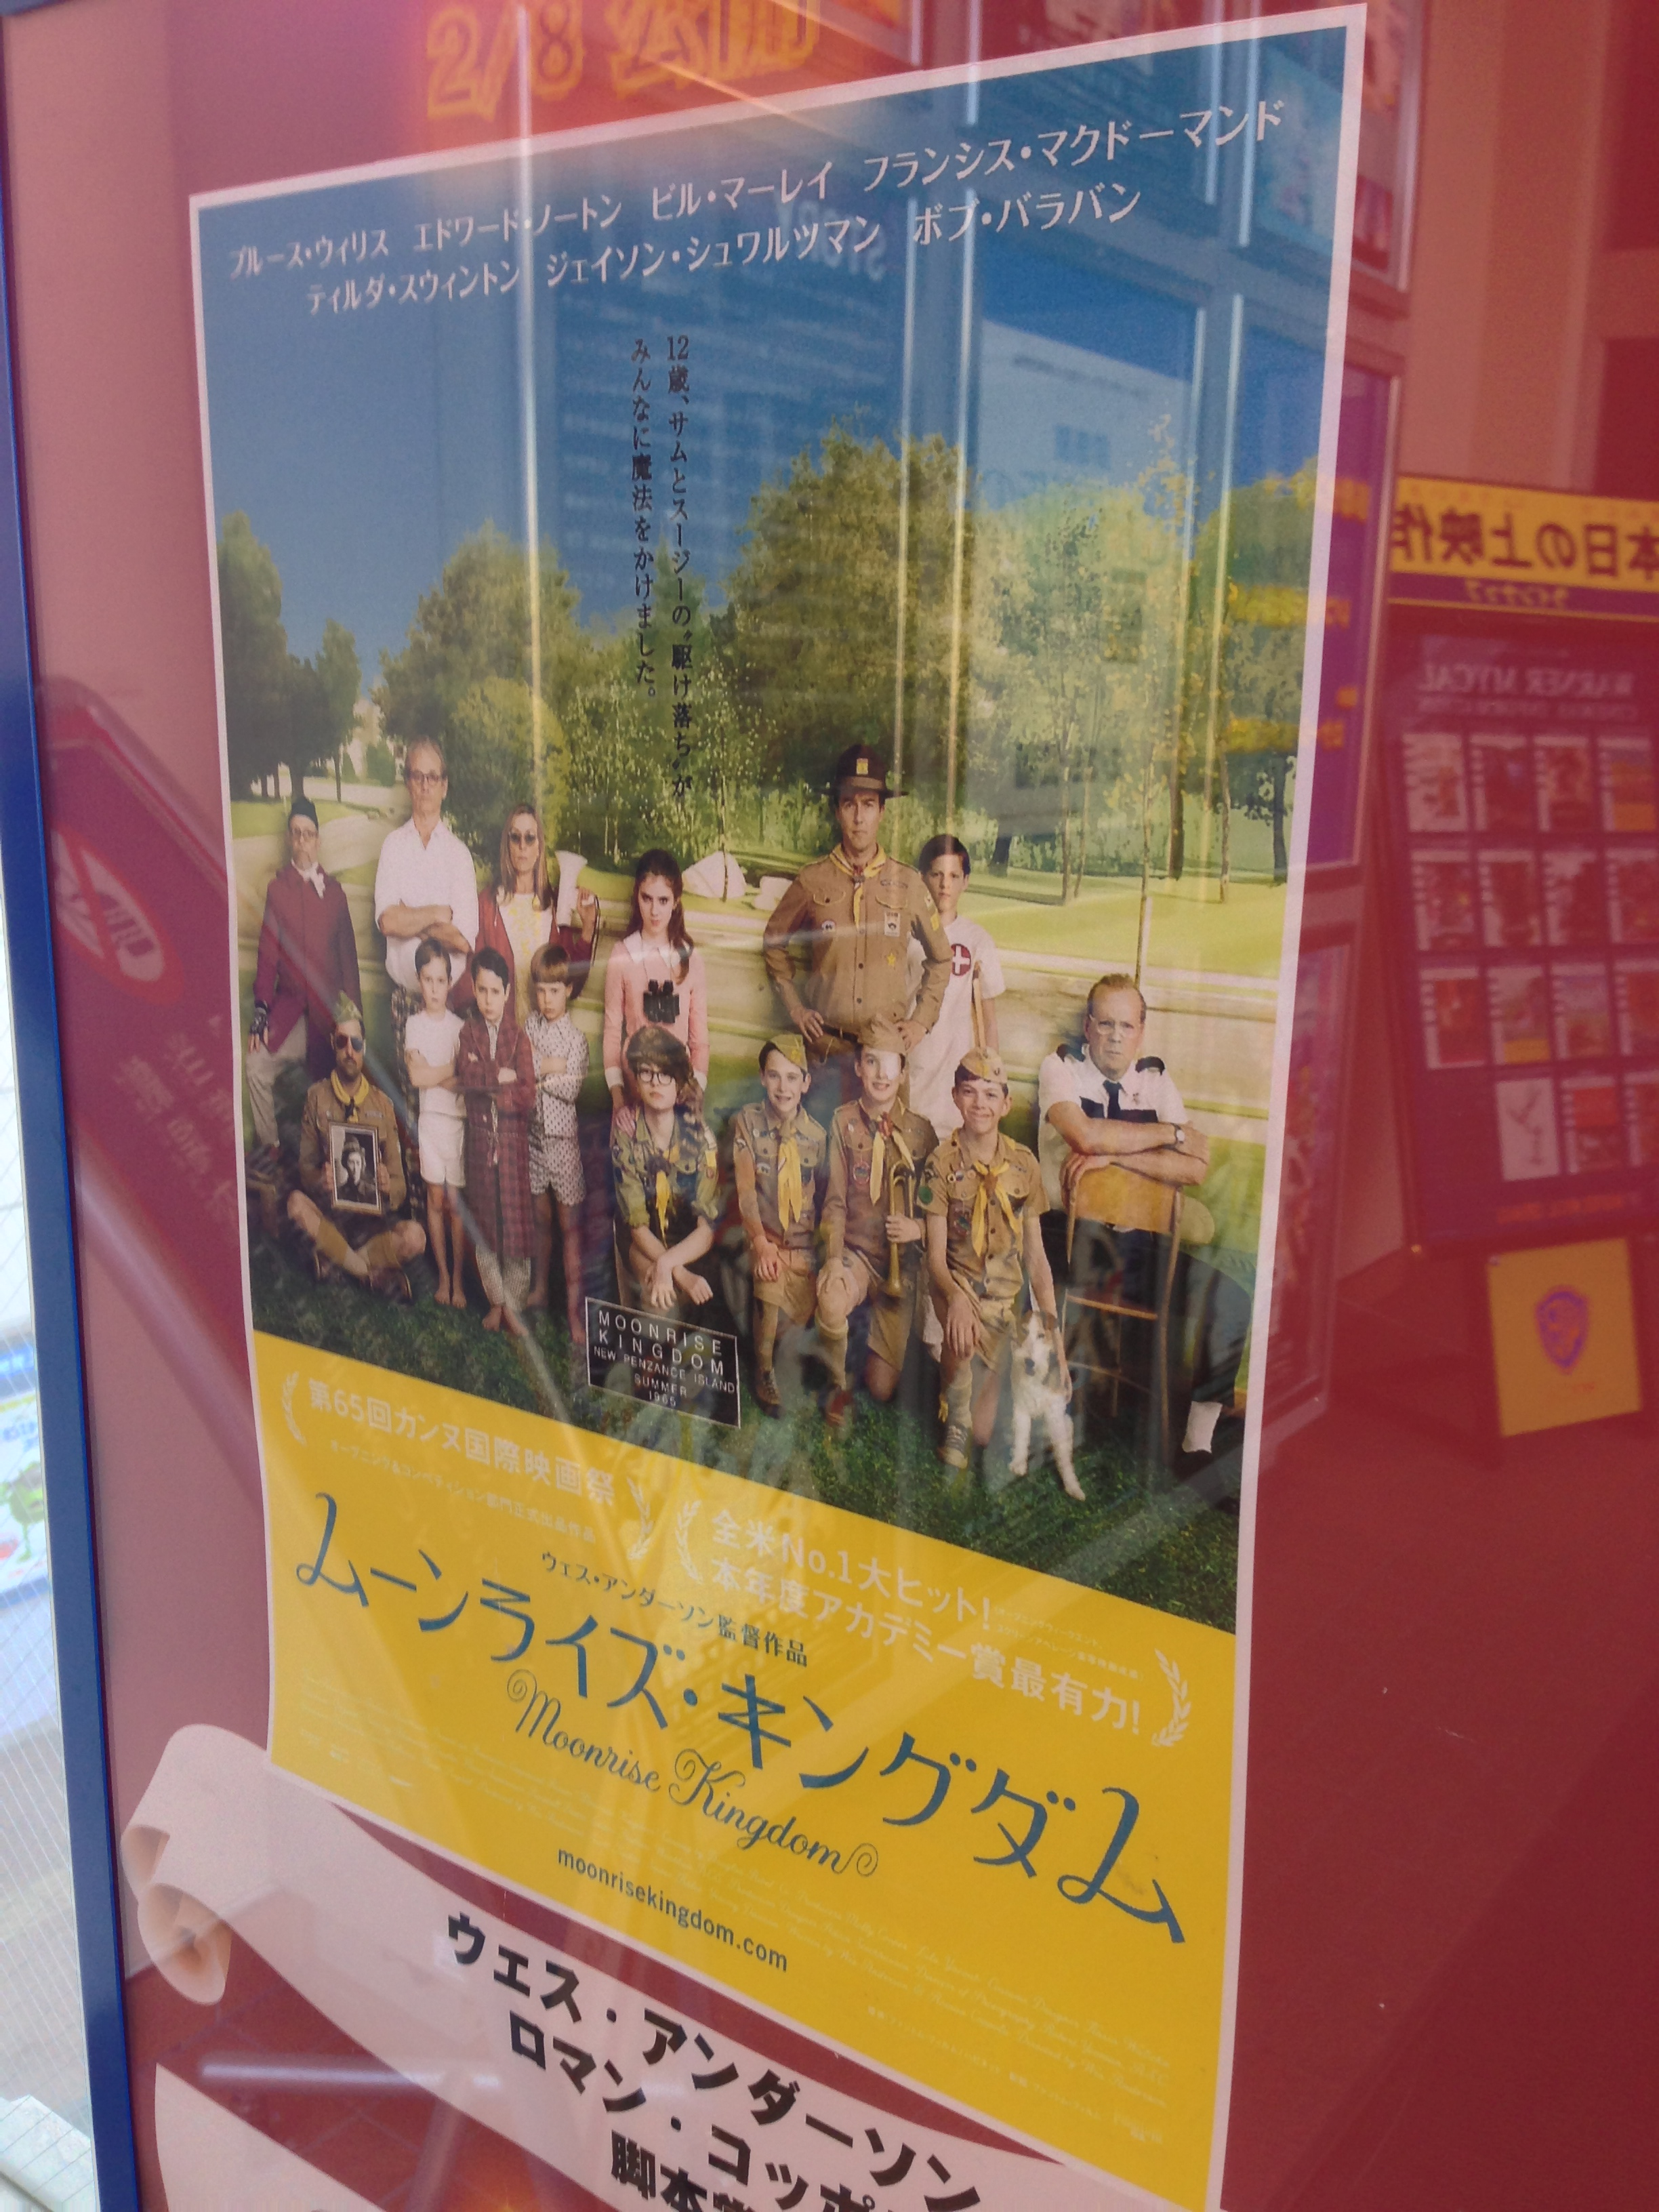 "[Video delivery] Impressions of watching the movie ""Moonrise Kingdom"""